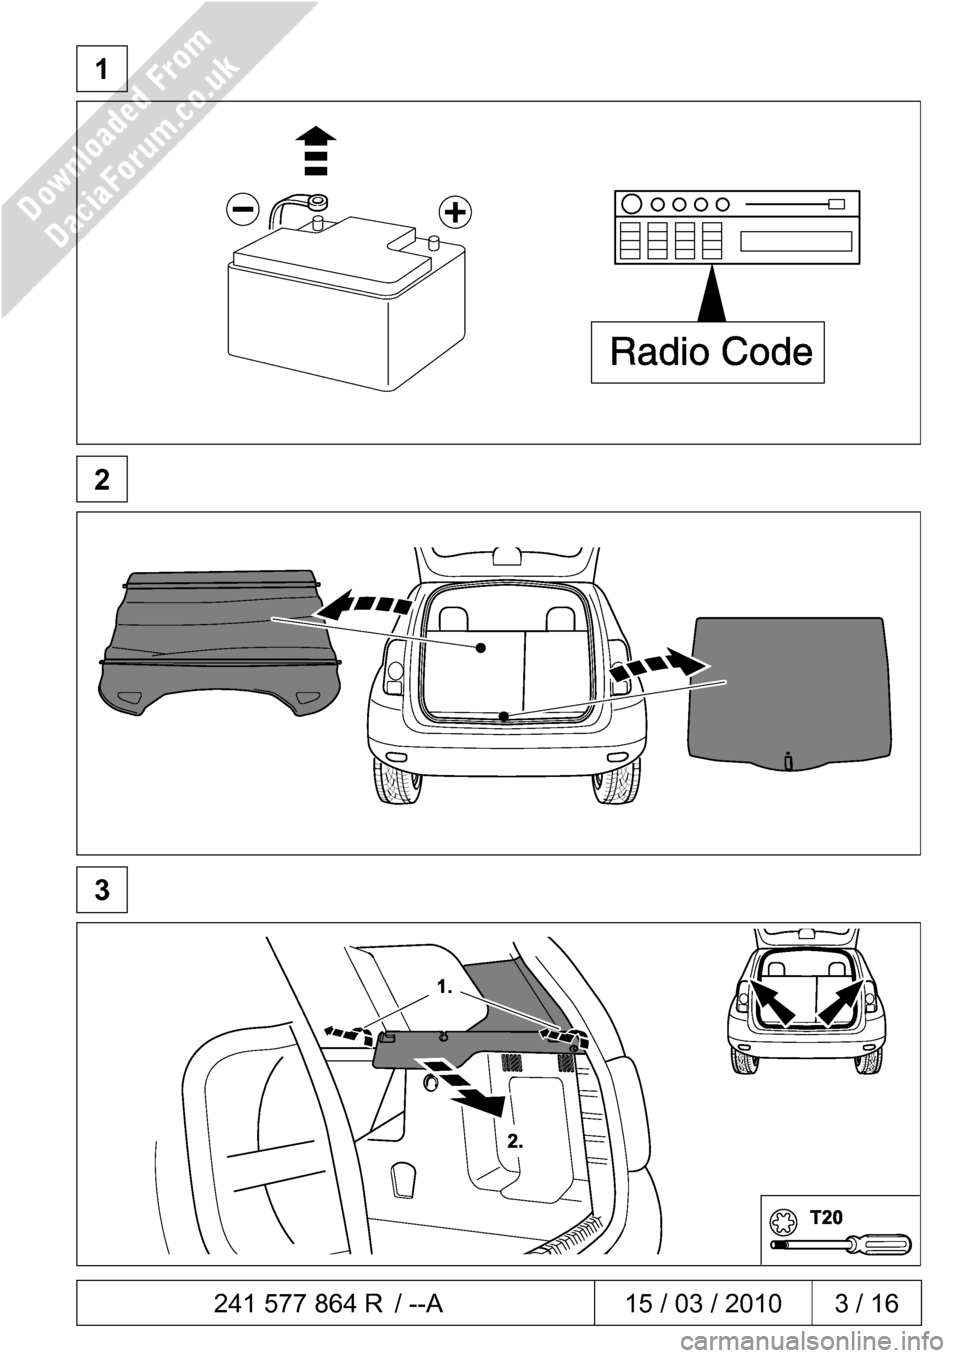 DACIA DUSTER 2010 1.G 7 Pin Towbar Fitting Guide Workshop Manual  241 577 864 R / --A  15 / 03 / 2010  3 / 16     1              2              3